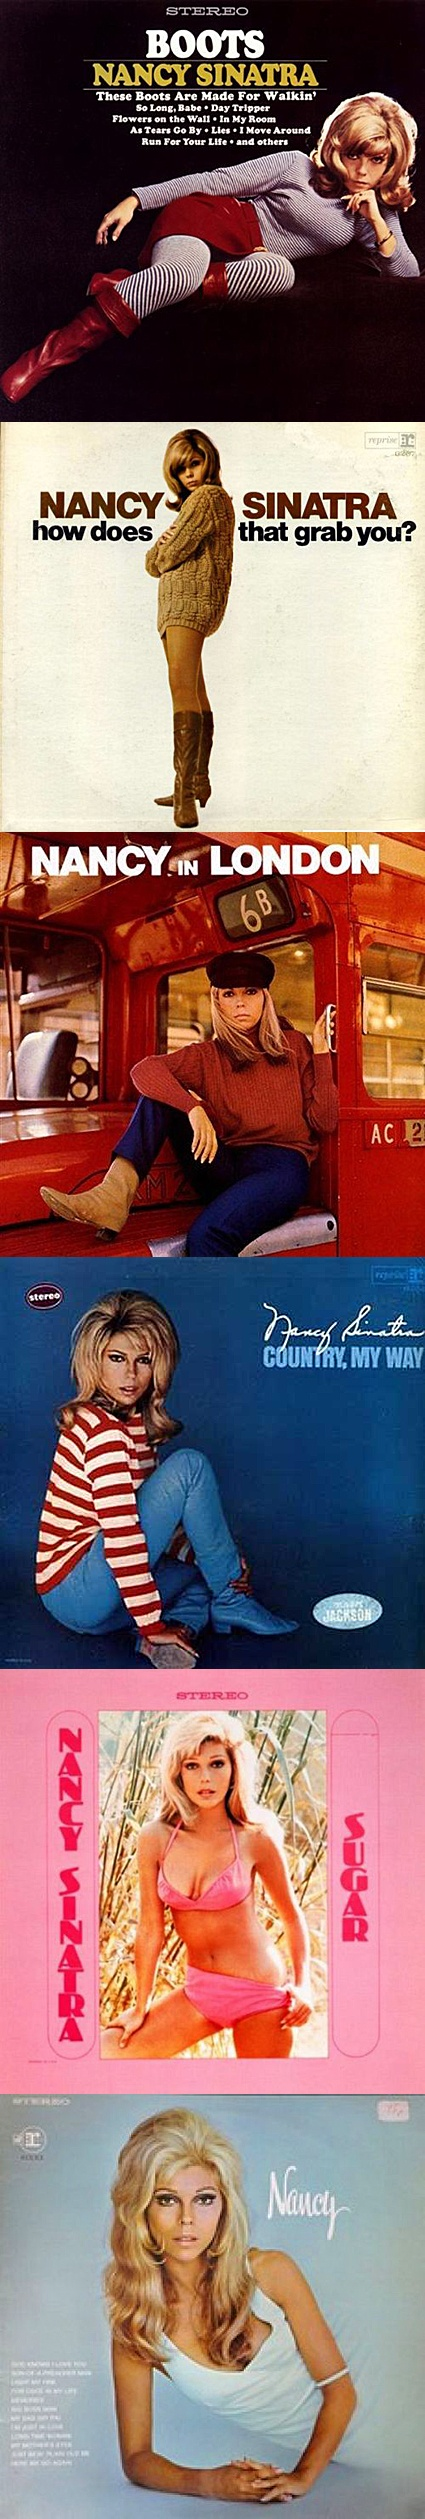 Nancy Sinatra LPs: Boots (1966) • How Does That Grab You? (1966) • Nancy in London (1966) • Country My Way (1967) • Sugar (1967) • Nancy (1969)